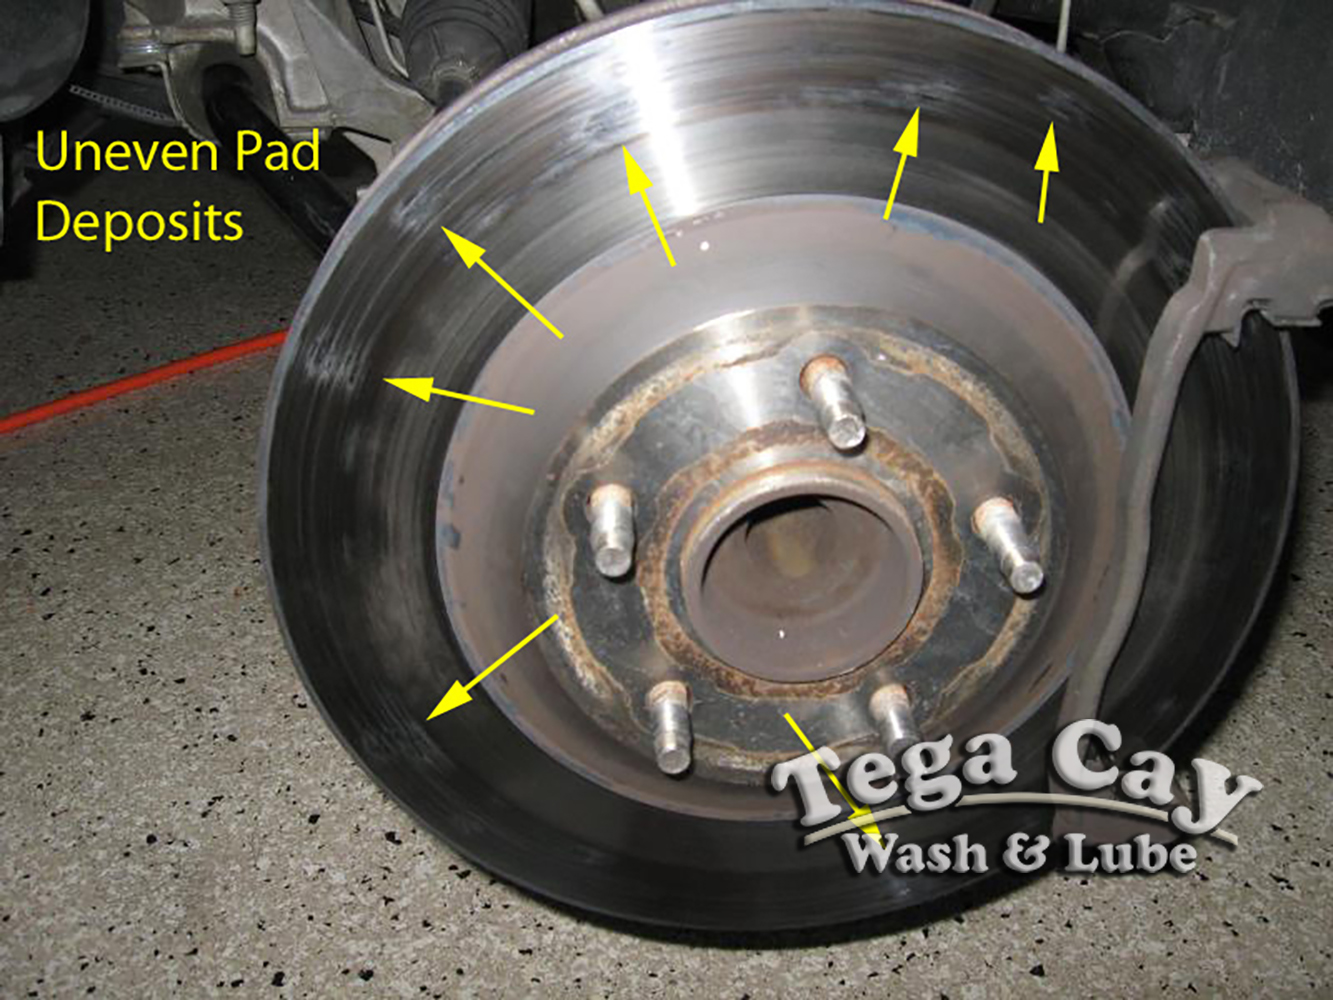 uneven-rotor-car-brake-pads-rotors-tega-cay-wash-lube-near-fort-mill-south-carolina-lake-wylie